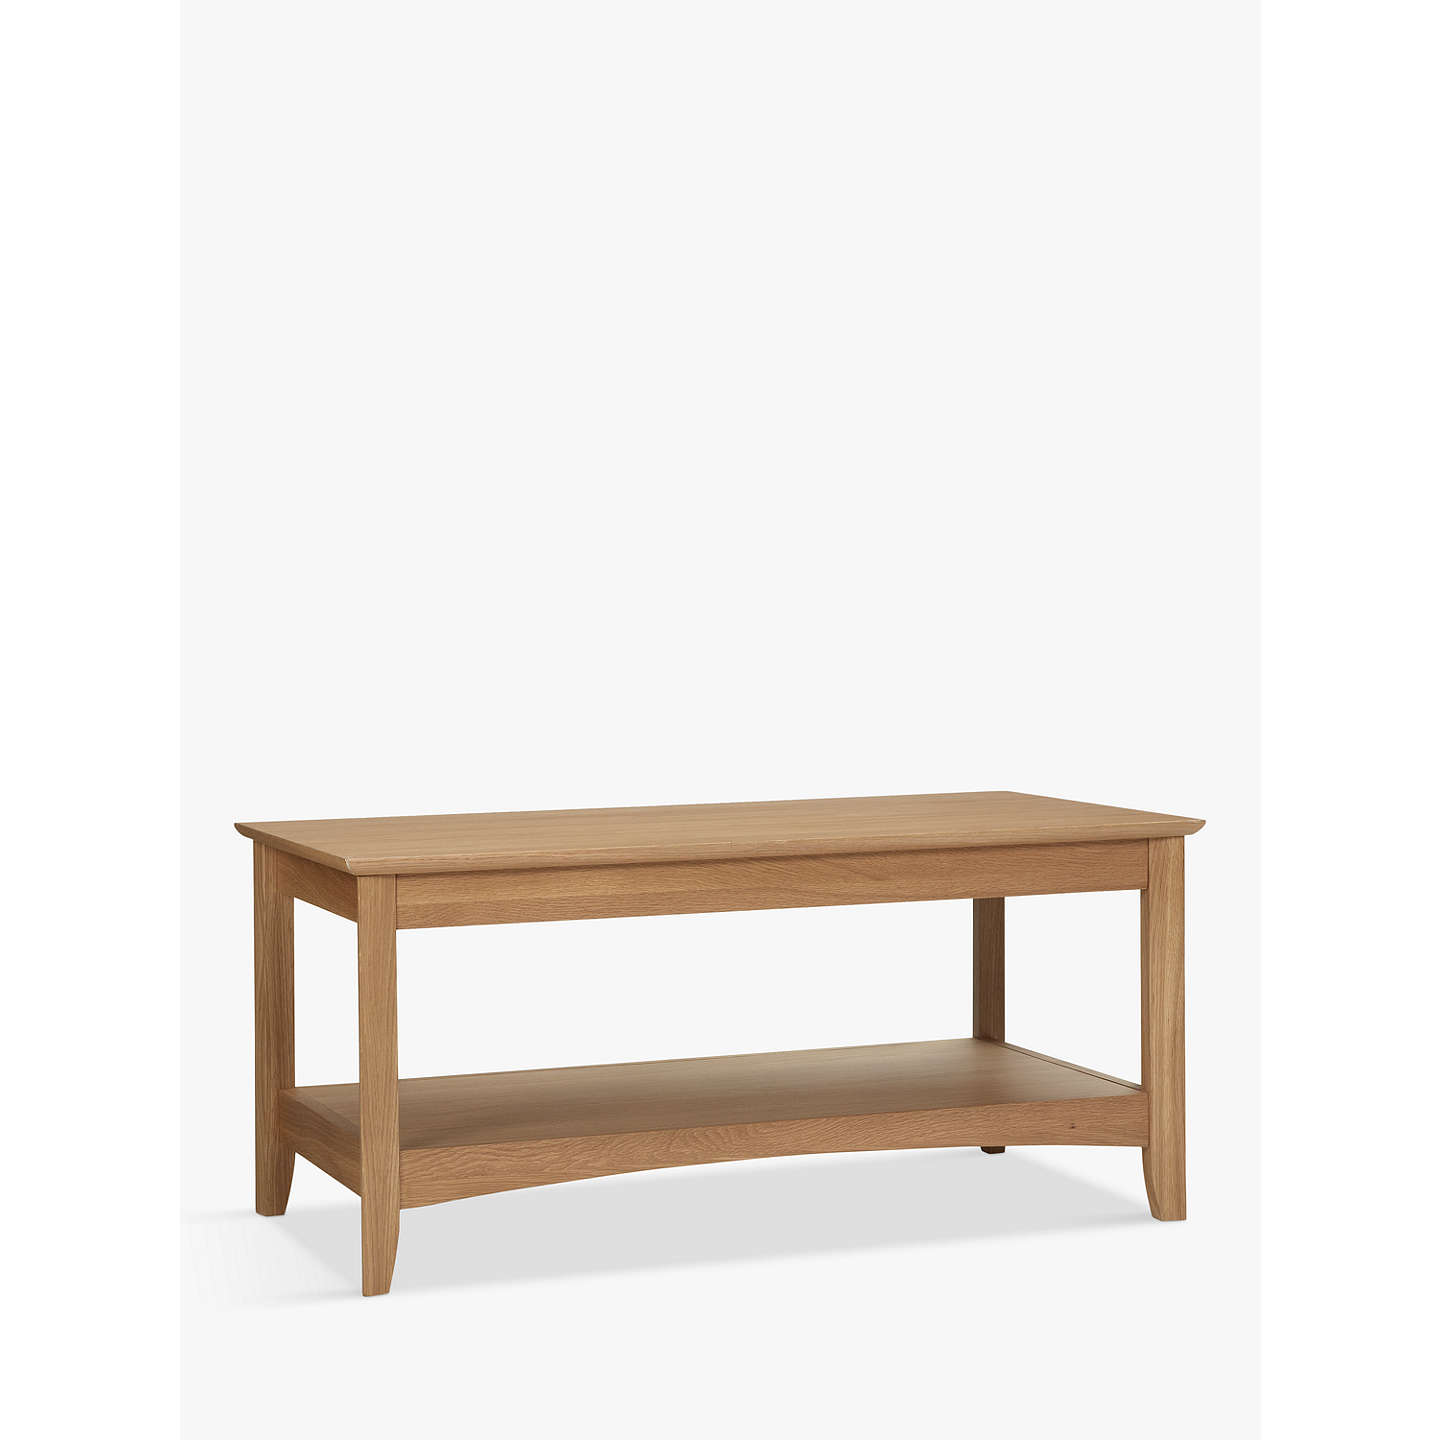 Glass Coffee Table Philippines: John Lewis Alba Coffee Table